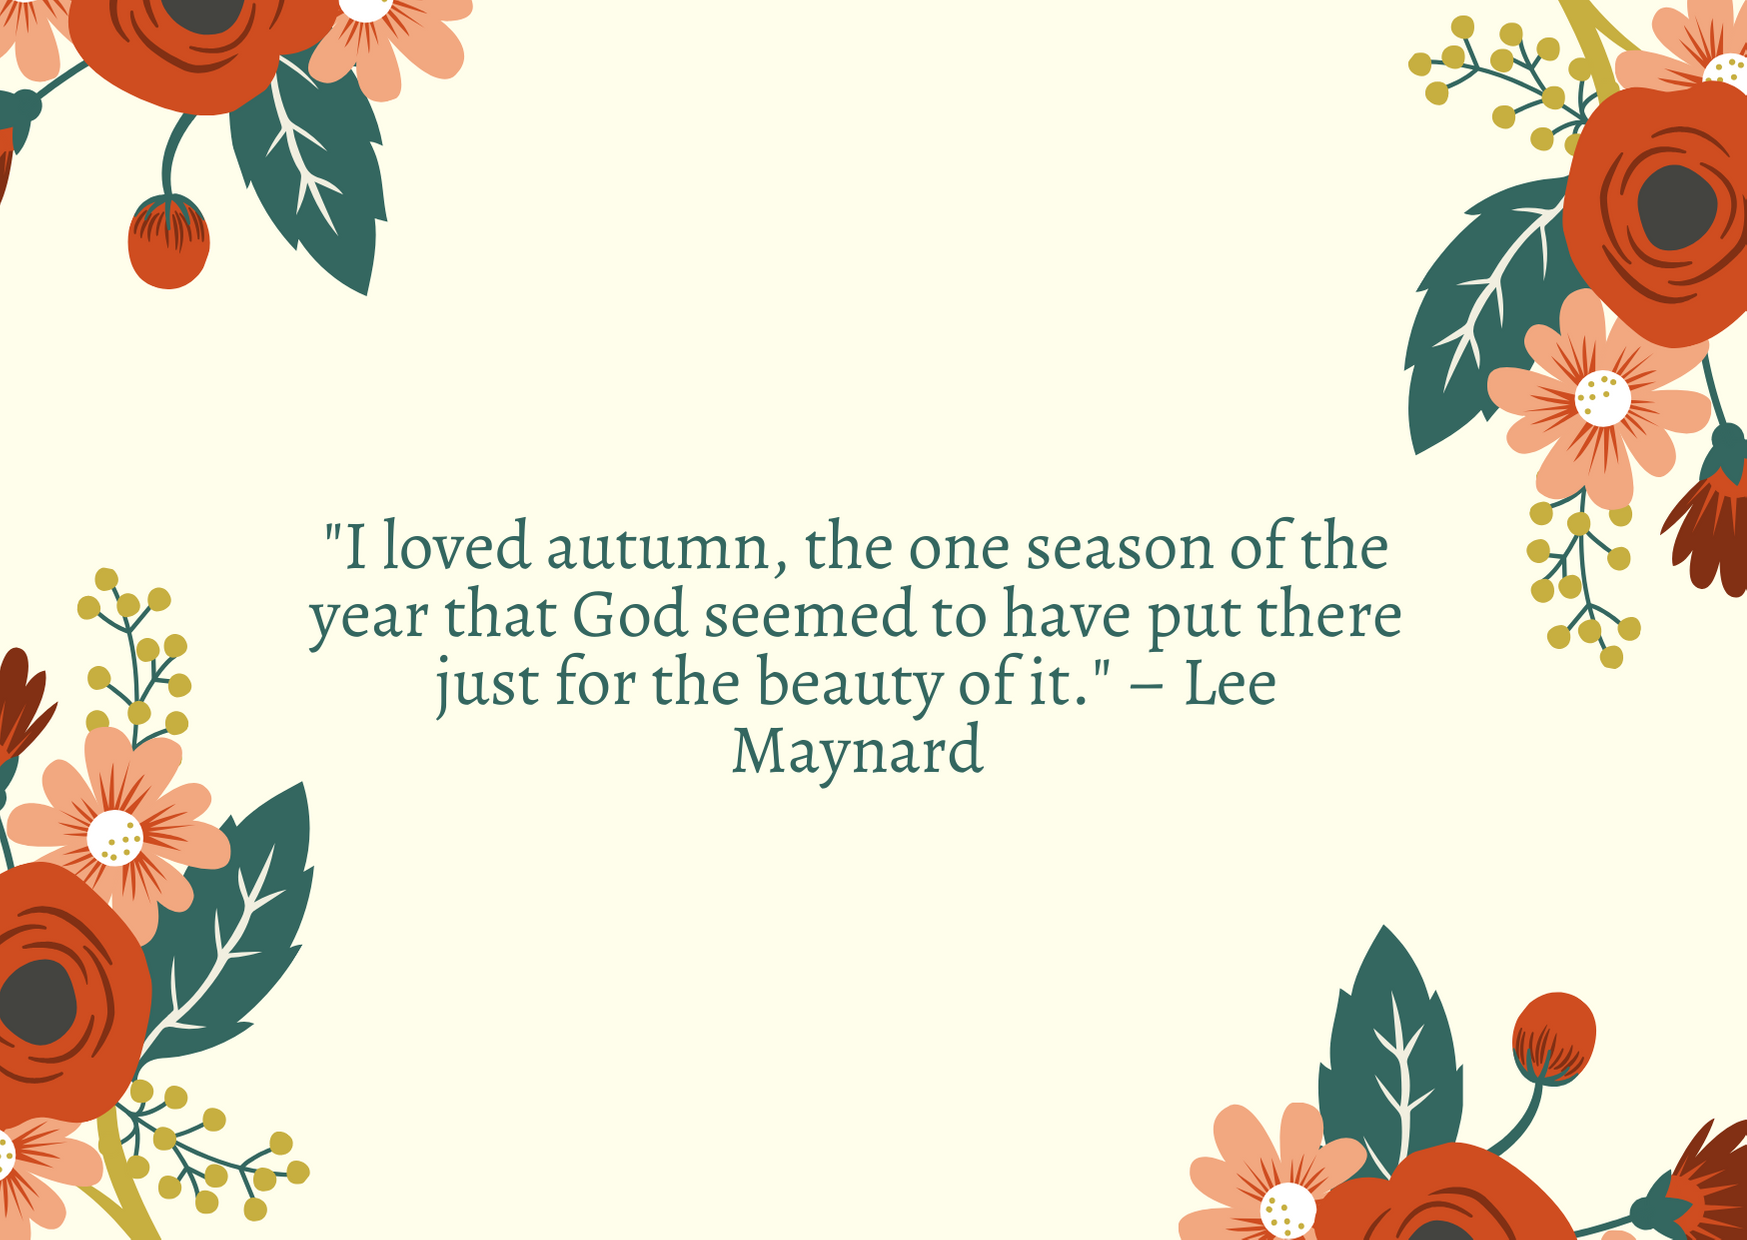 """I loved autumn, the one season of the year that God seemed to have put there just for the beauty of it."" – Lee Maynard"